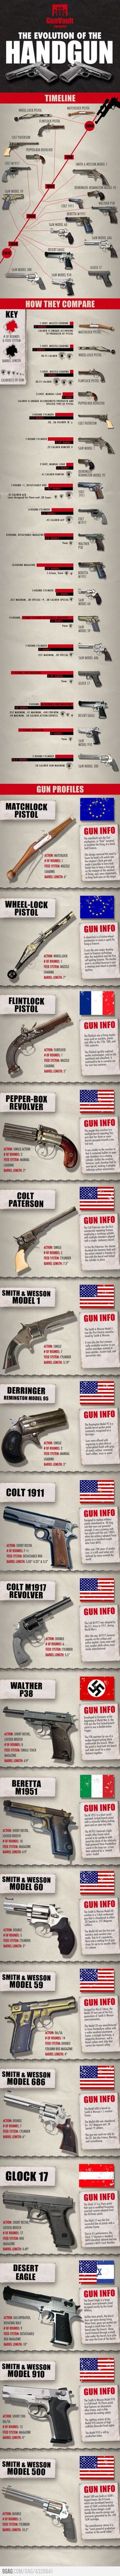 Evolution Of The Handgun... I have 2 guns on this list. Love my model 910!